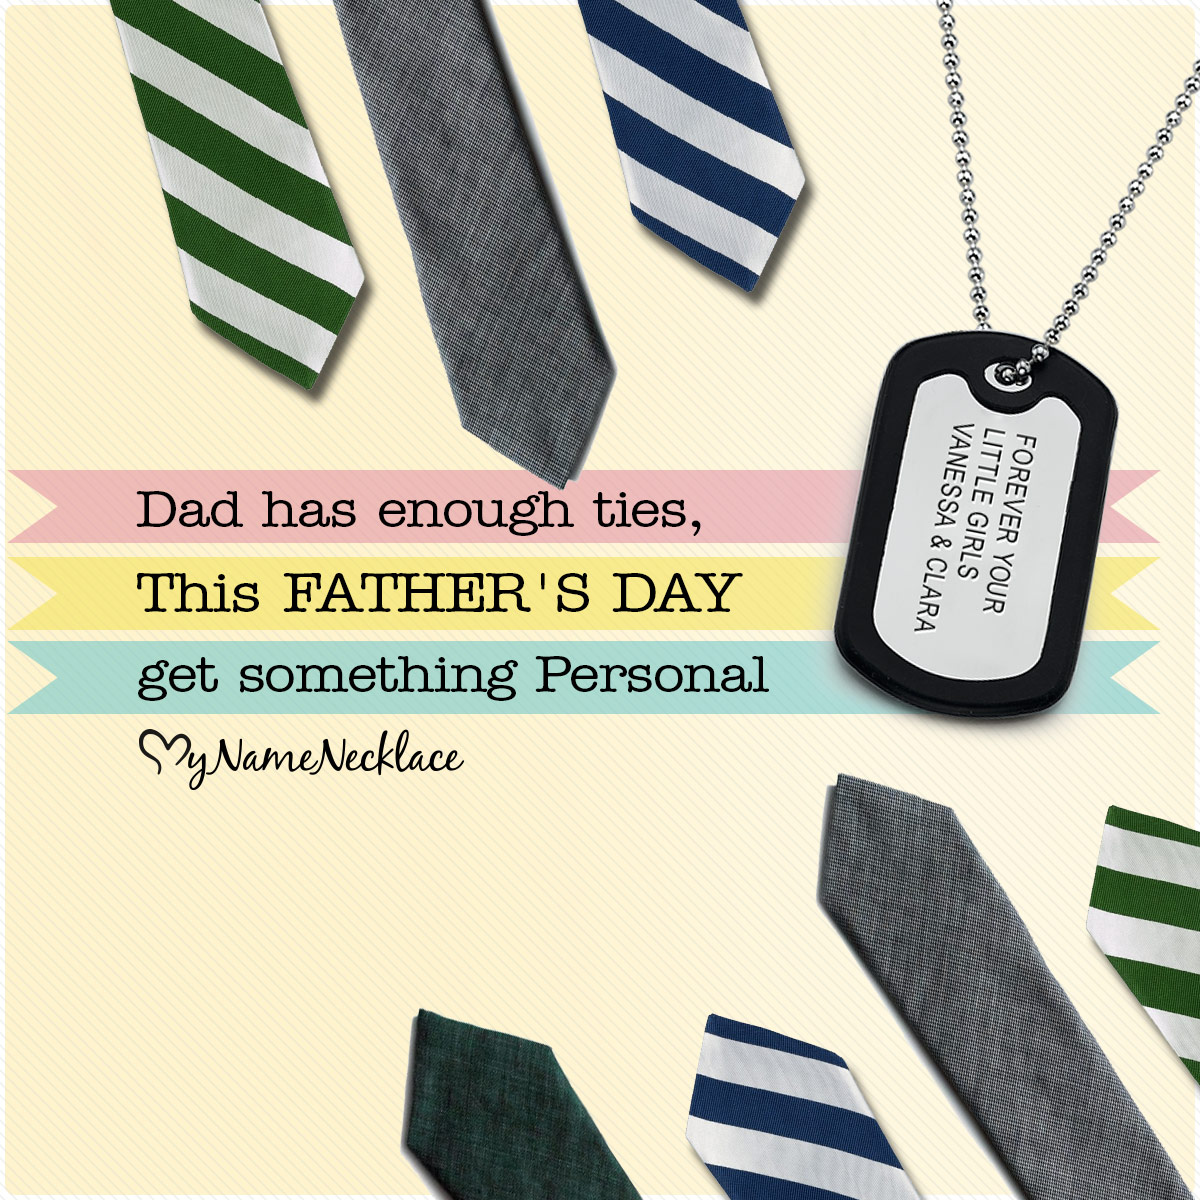 MyNameNecklace Father's Day Celebration